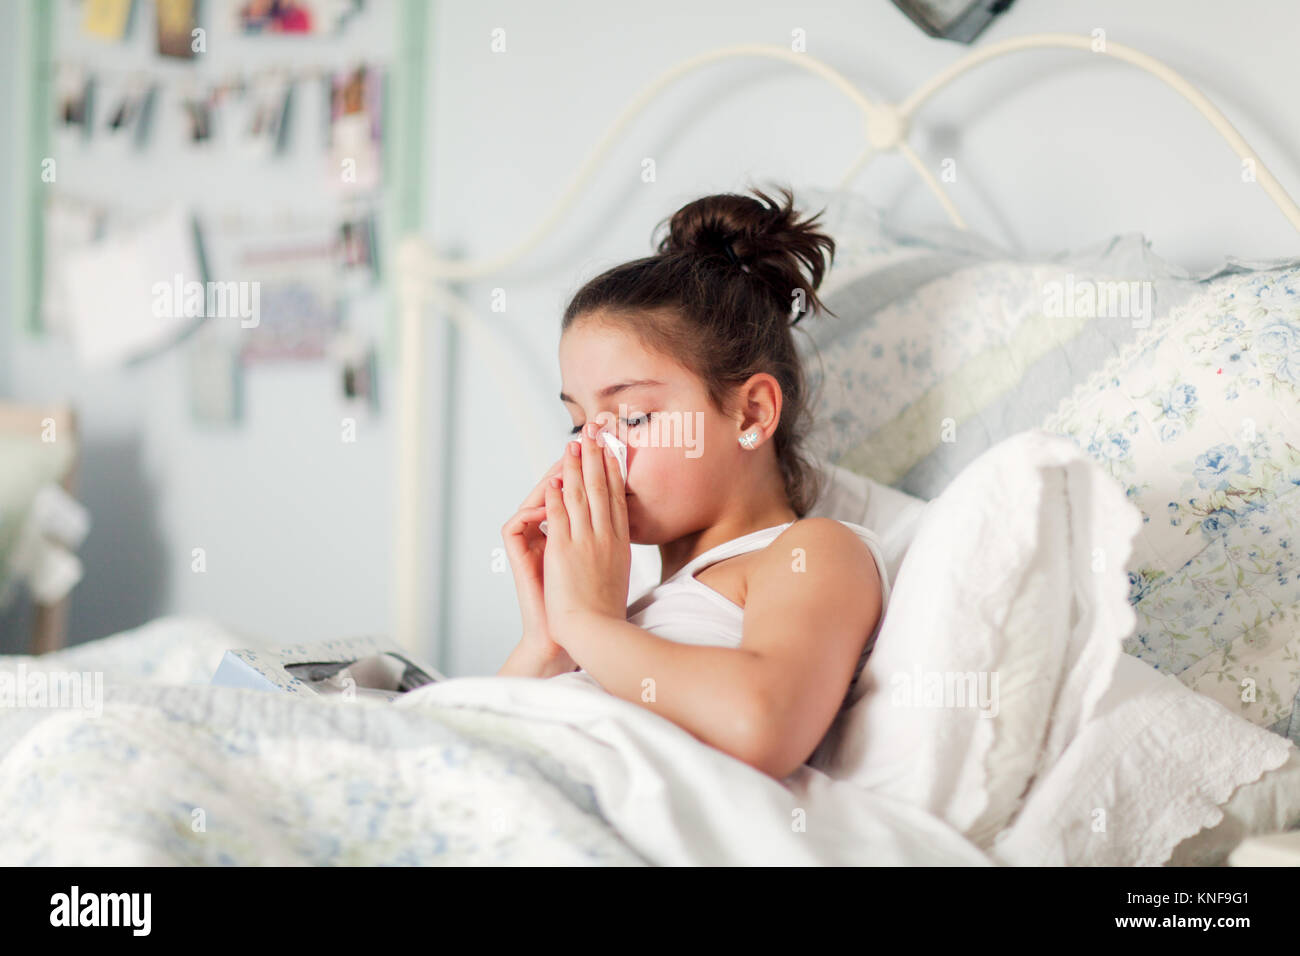 Girl in bed blowing nose sur mouchoir Photo Stock